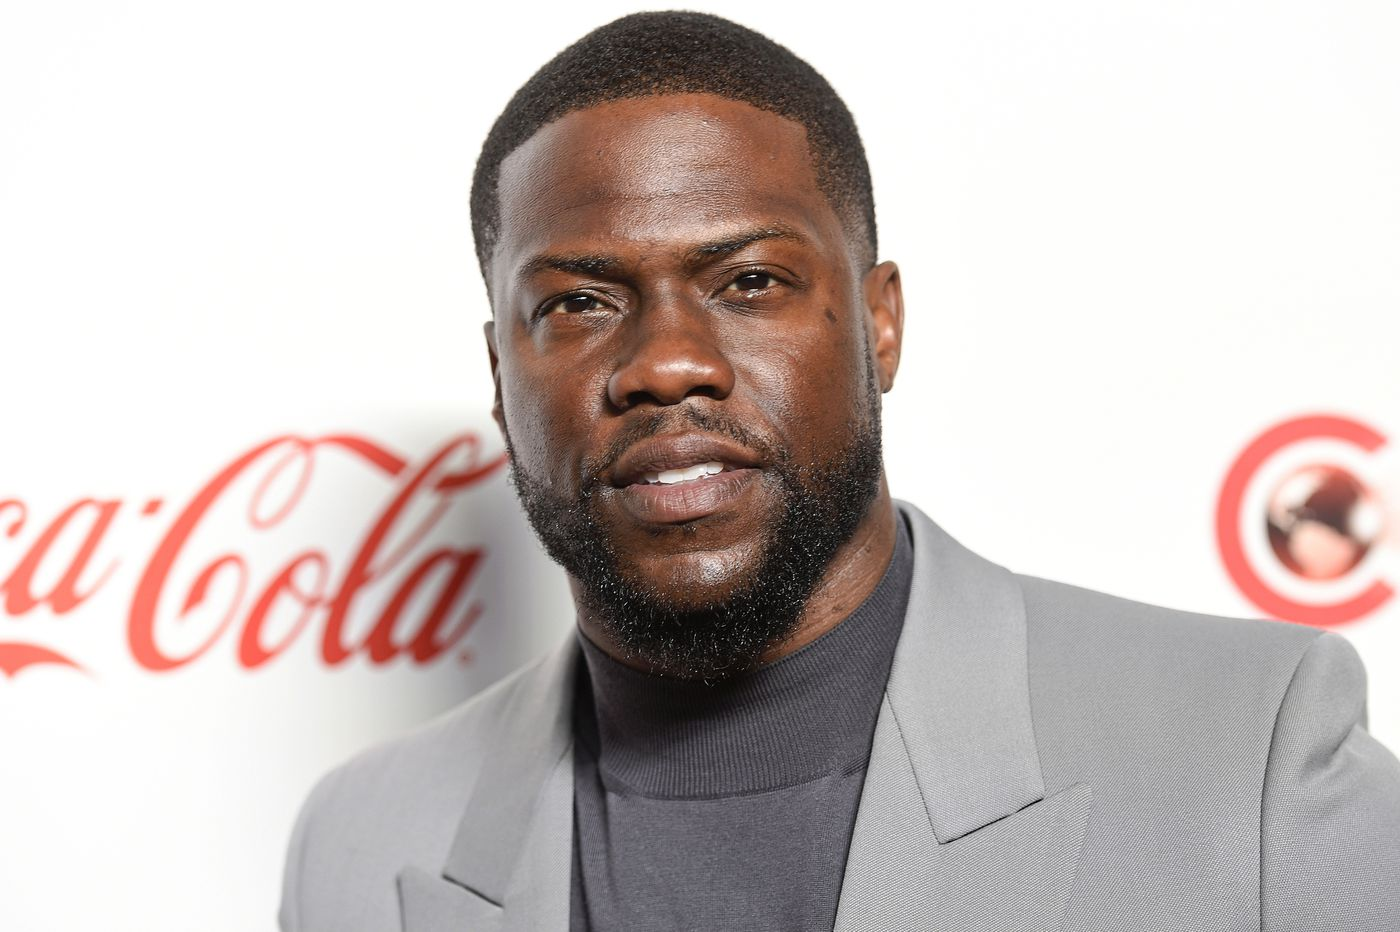 Kevin Hart is back at work after sustaining substantial injuries in car accident